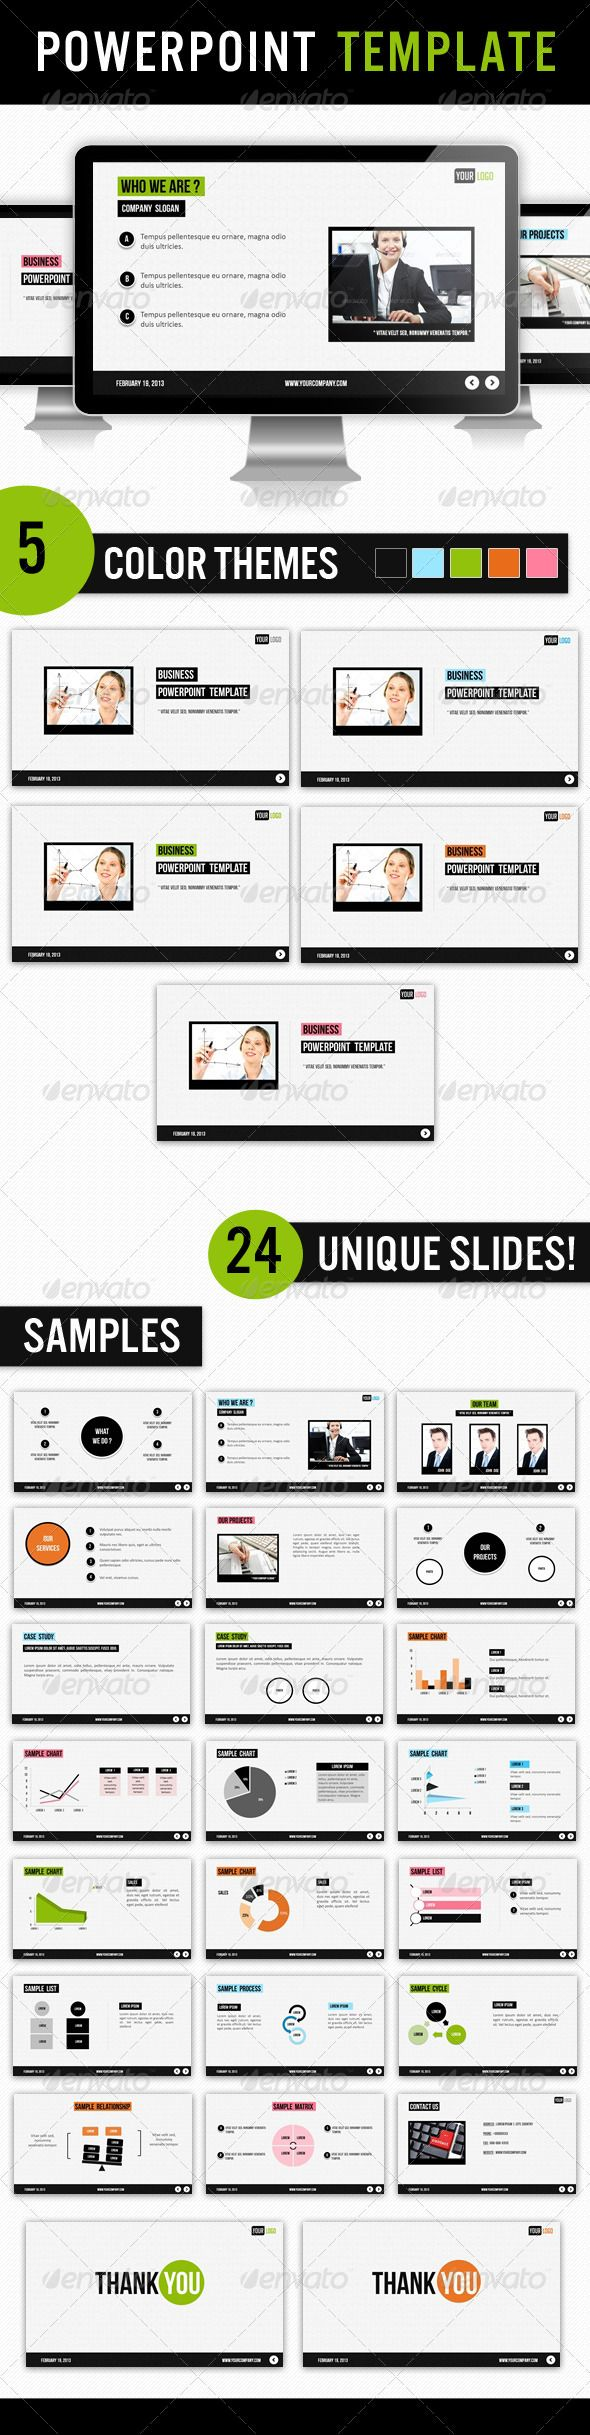 Best 25 ppt file ideas on pinterest ppt animation powerpoint business powerpoint template toneelgroepblik Images